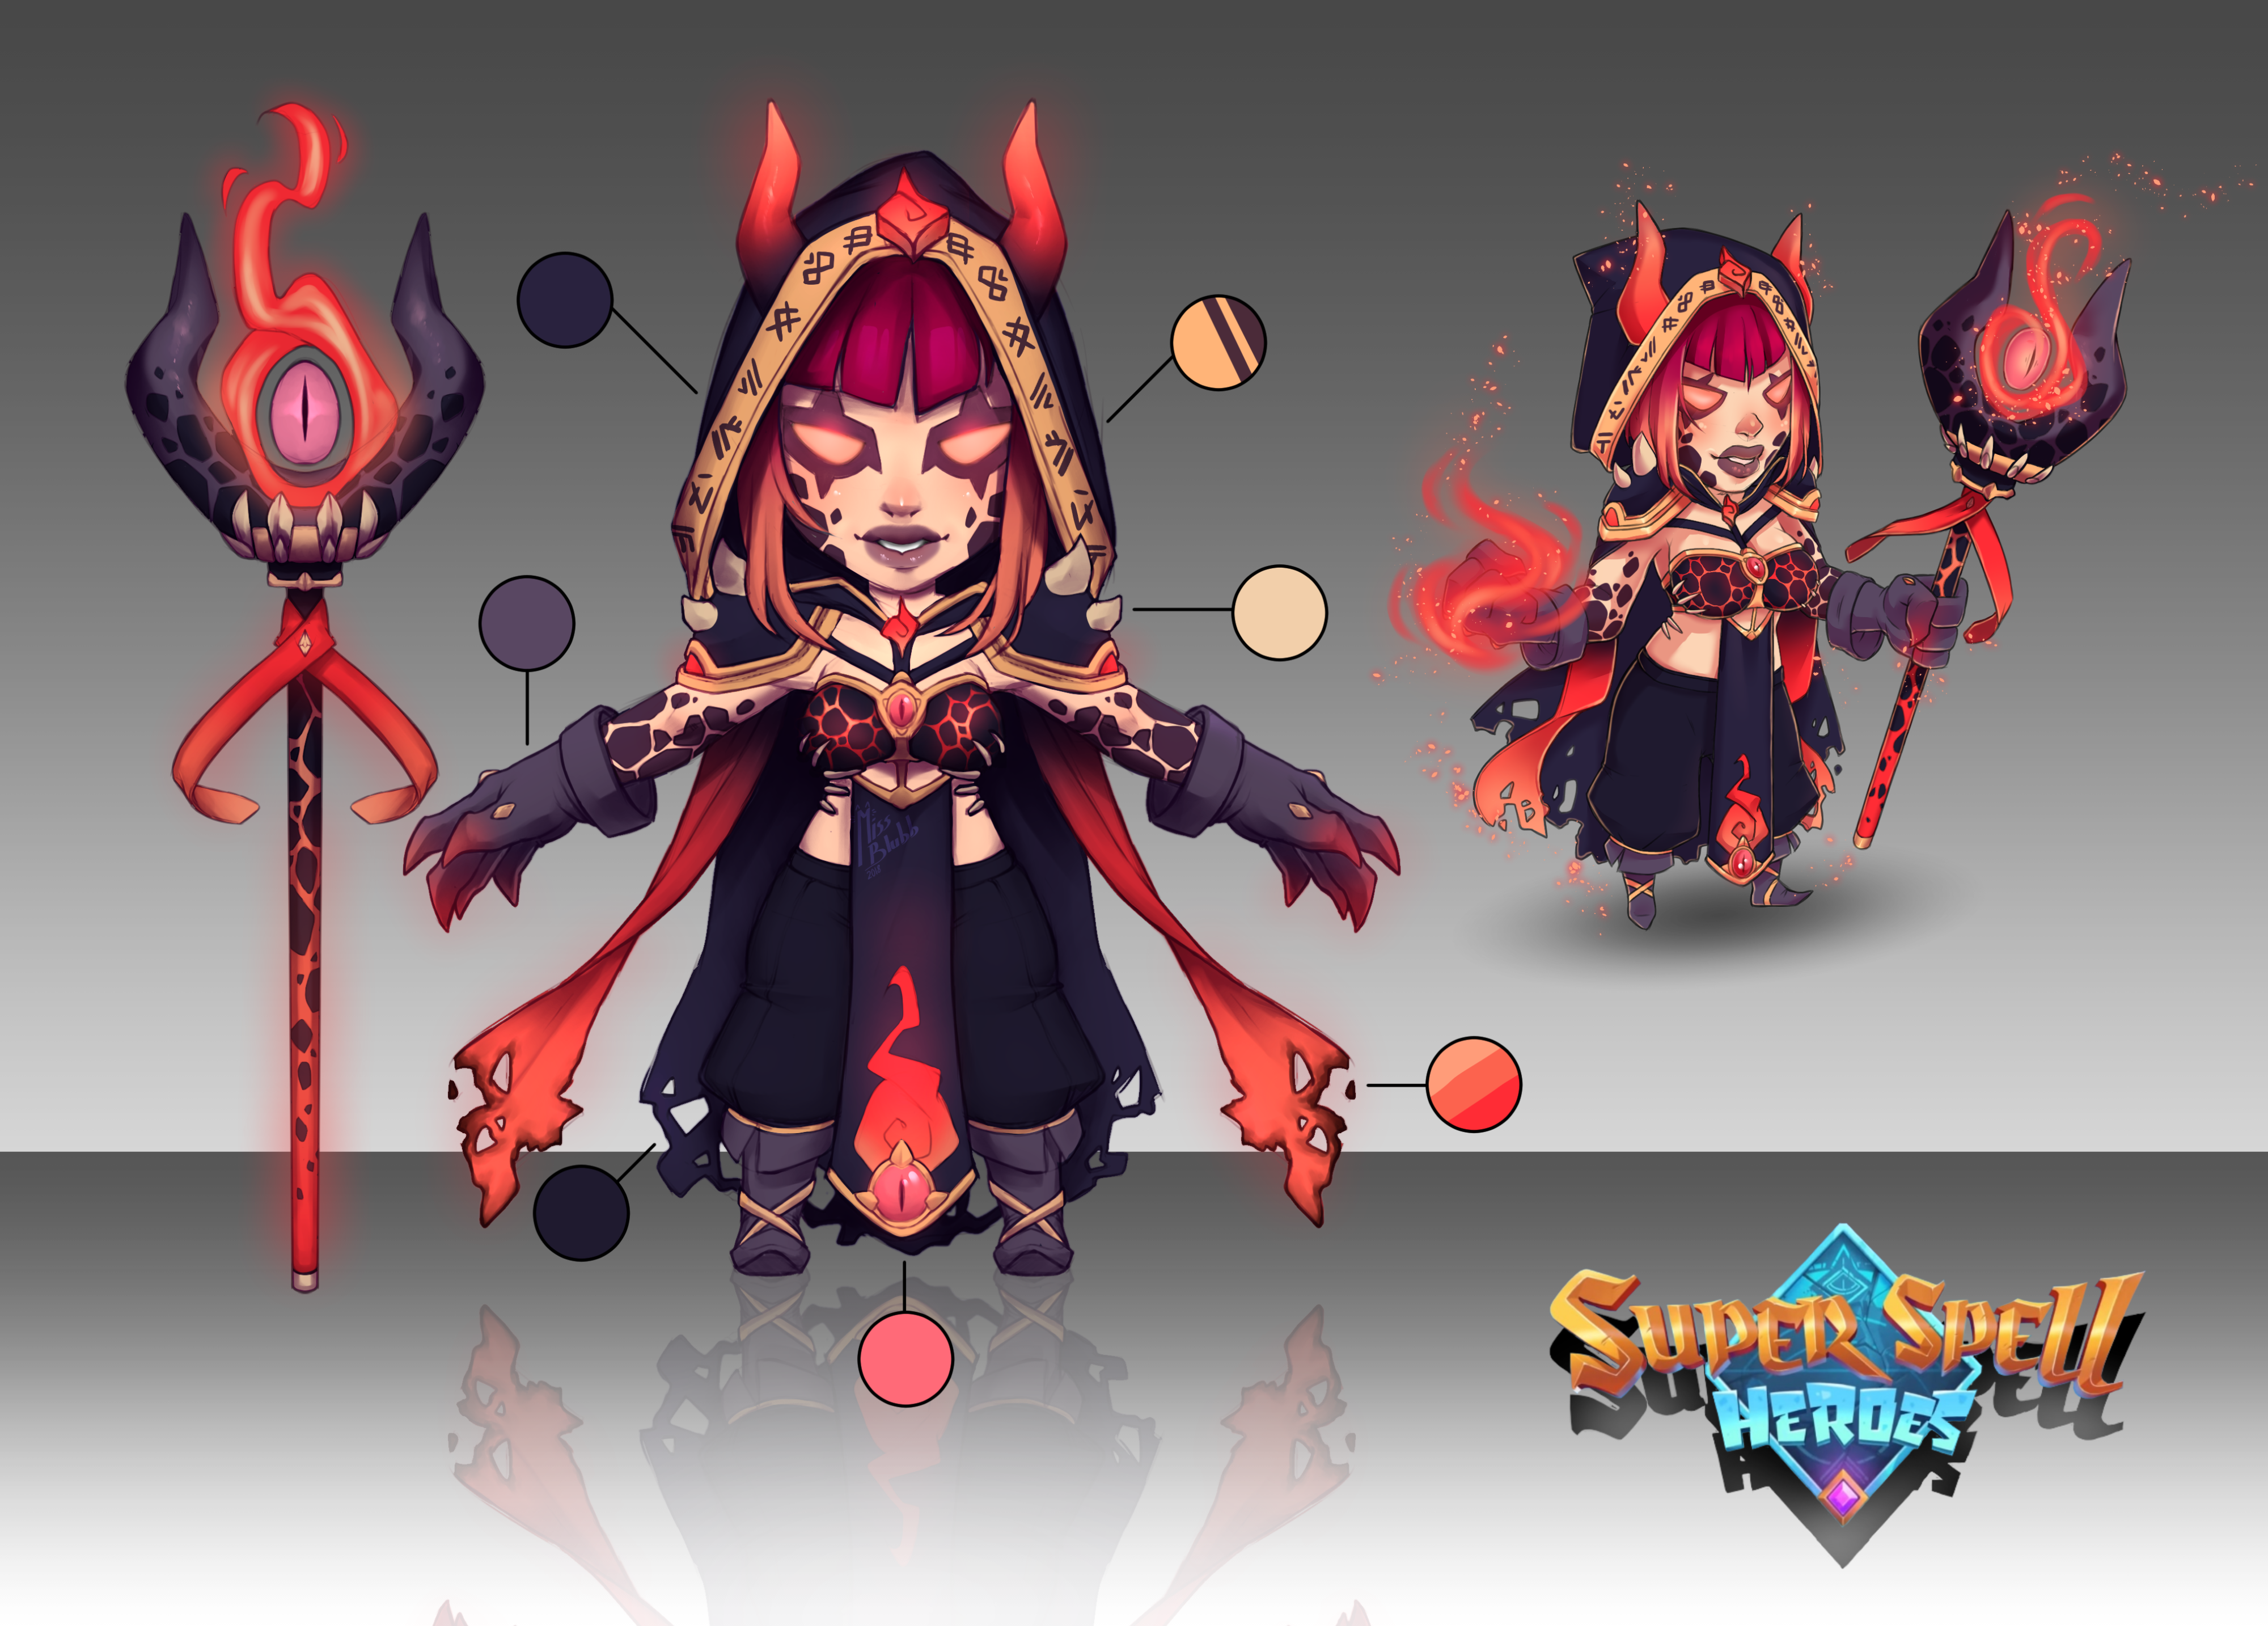 SuperSpellHeroes outfit design by MissBlubb on Newgrounds